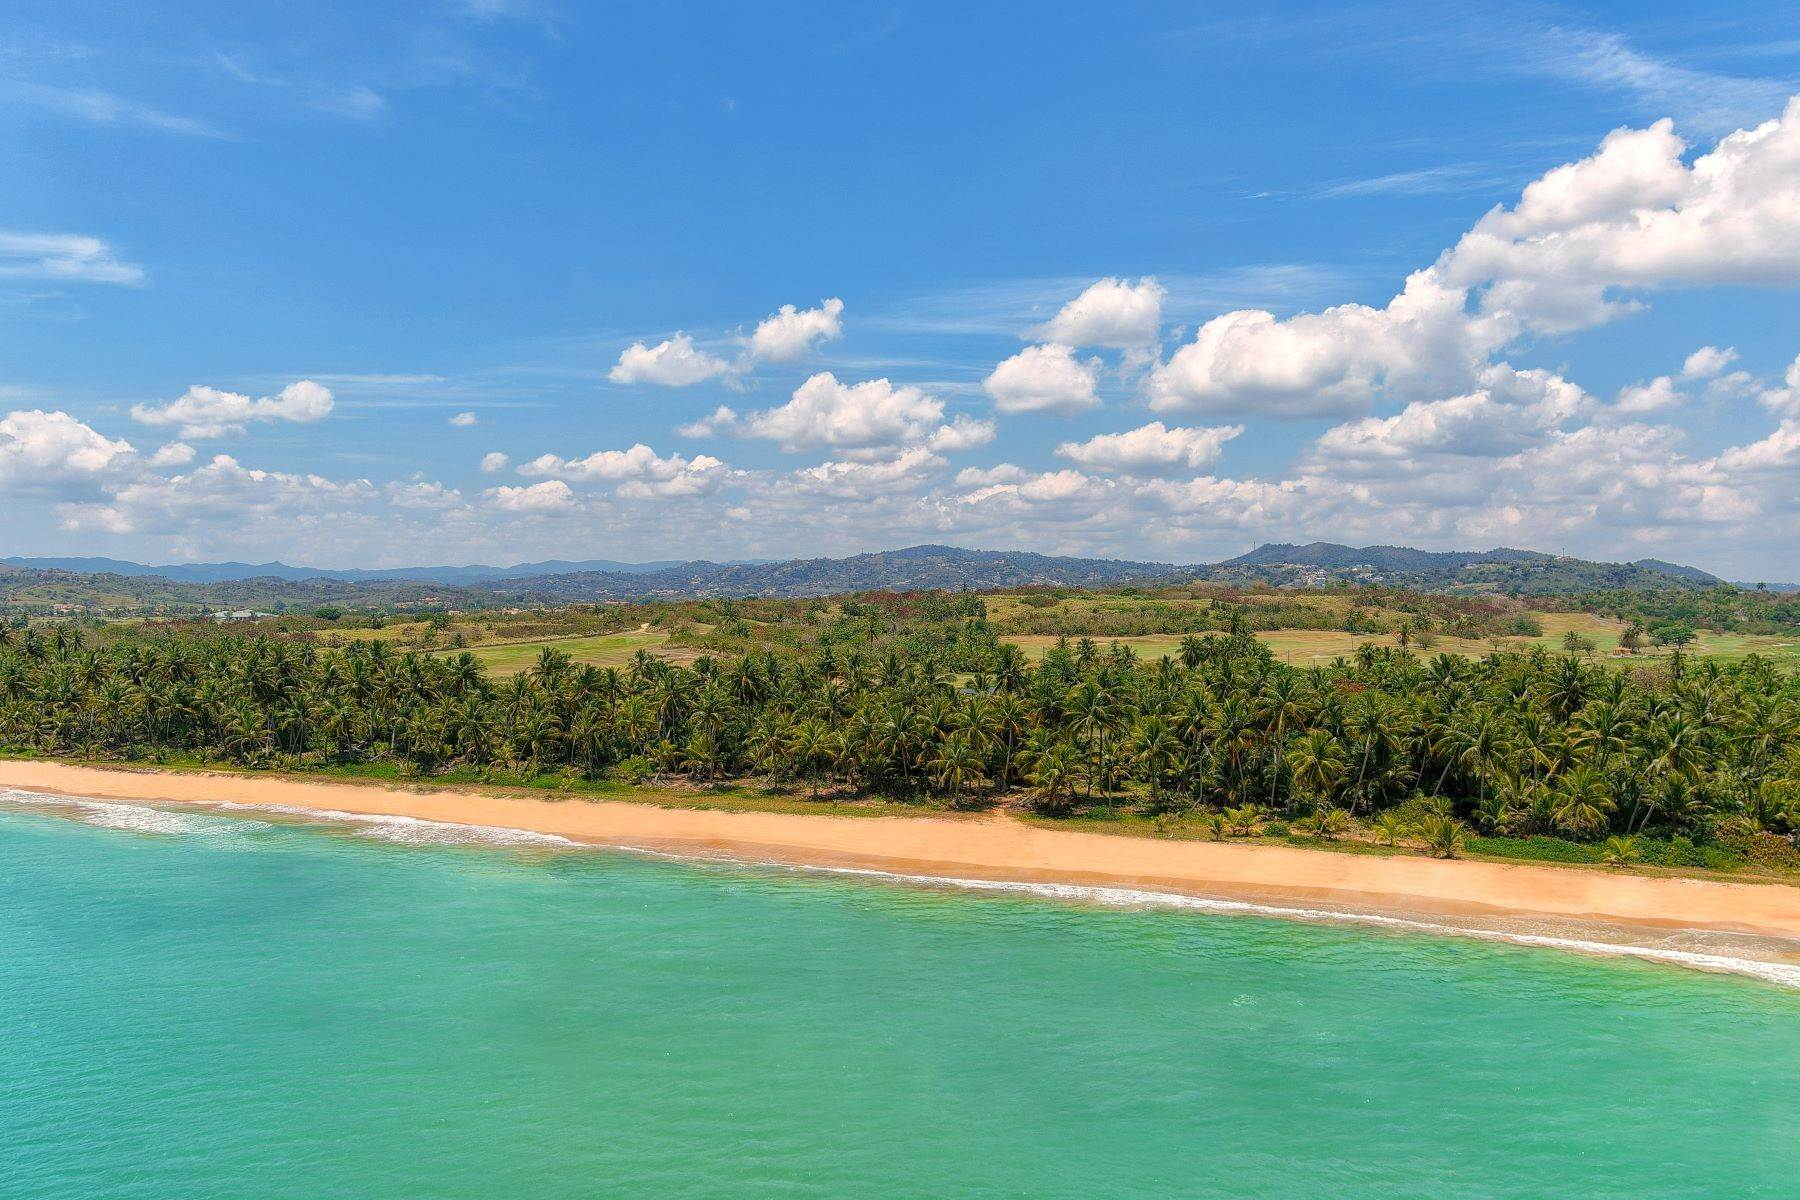 Land for Sale at Buena Vista Plantation in Palmas del Mar Palmas Del Mar, 00791 Puerto Rico